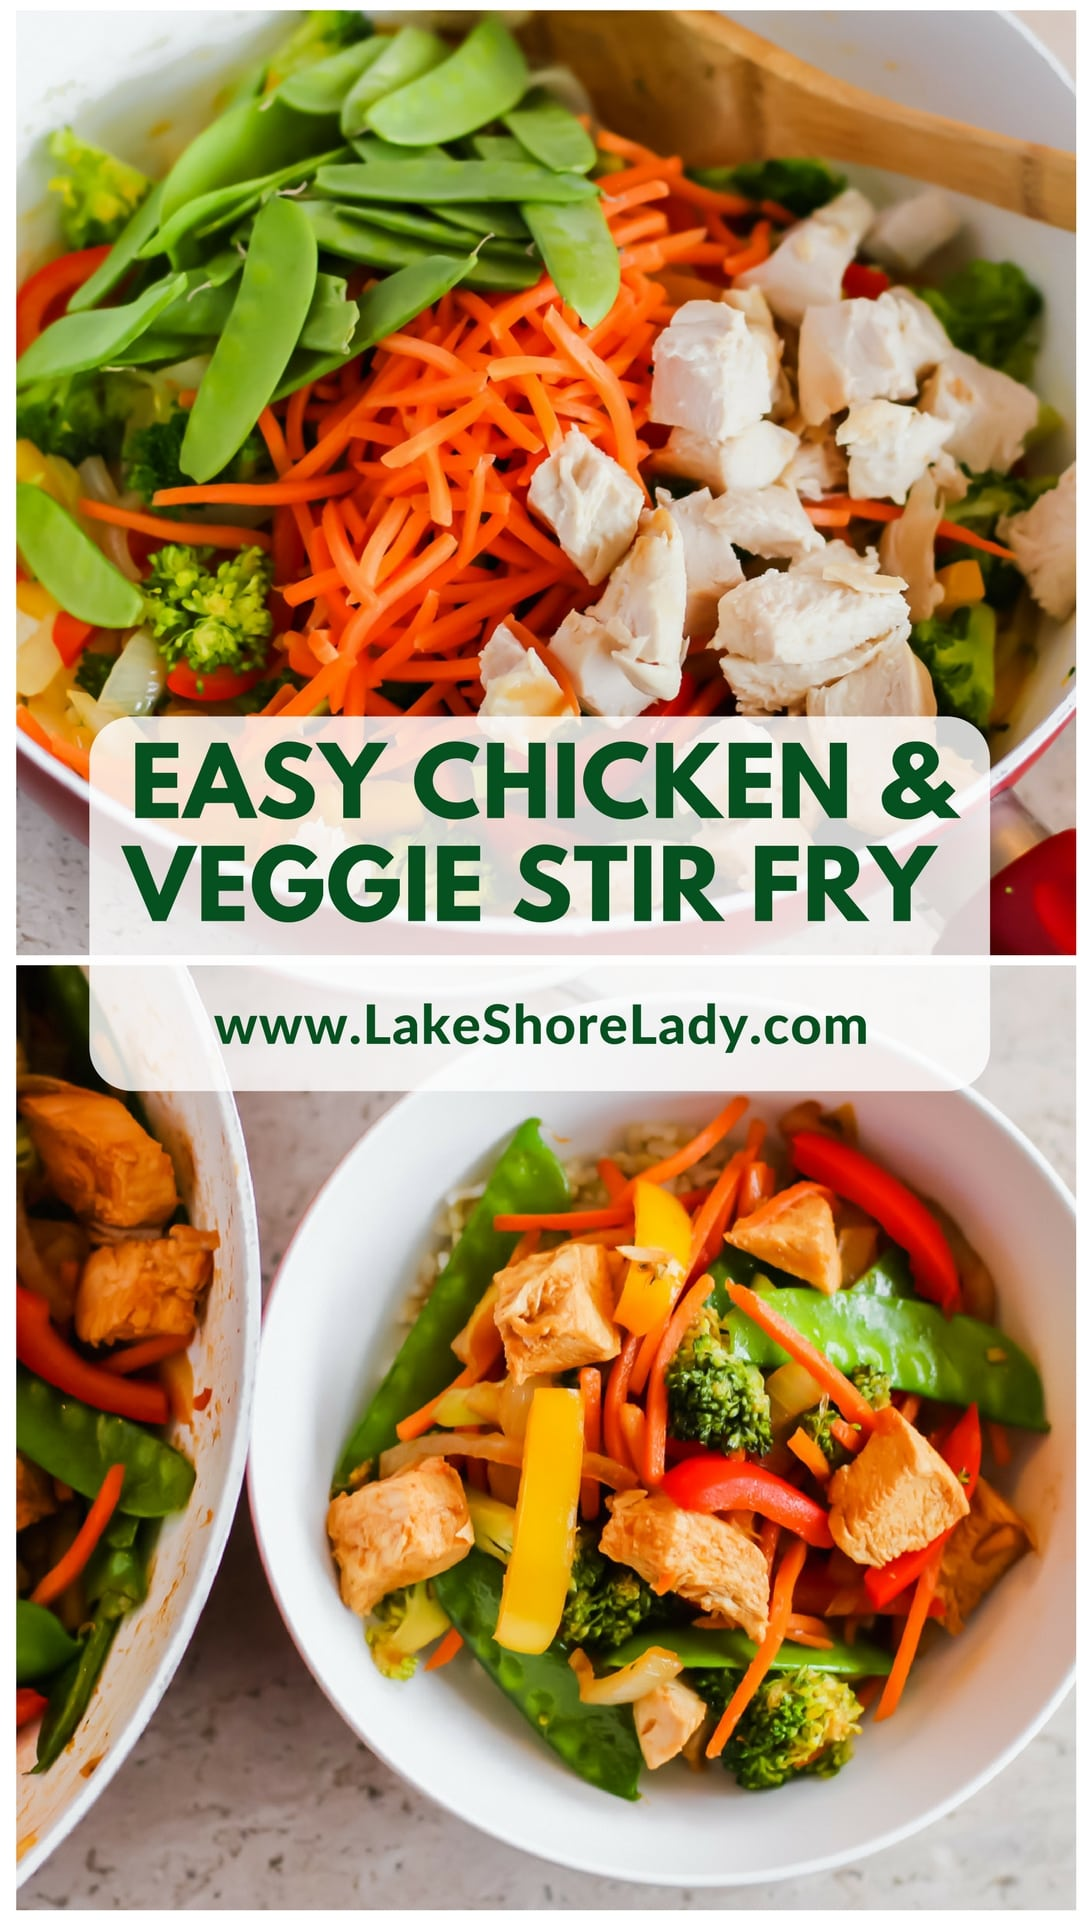 Learn how to make the perfect stir fry: Easy chicken and veggie stir fry recipe